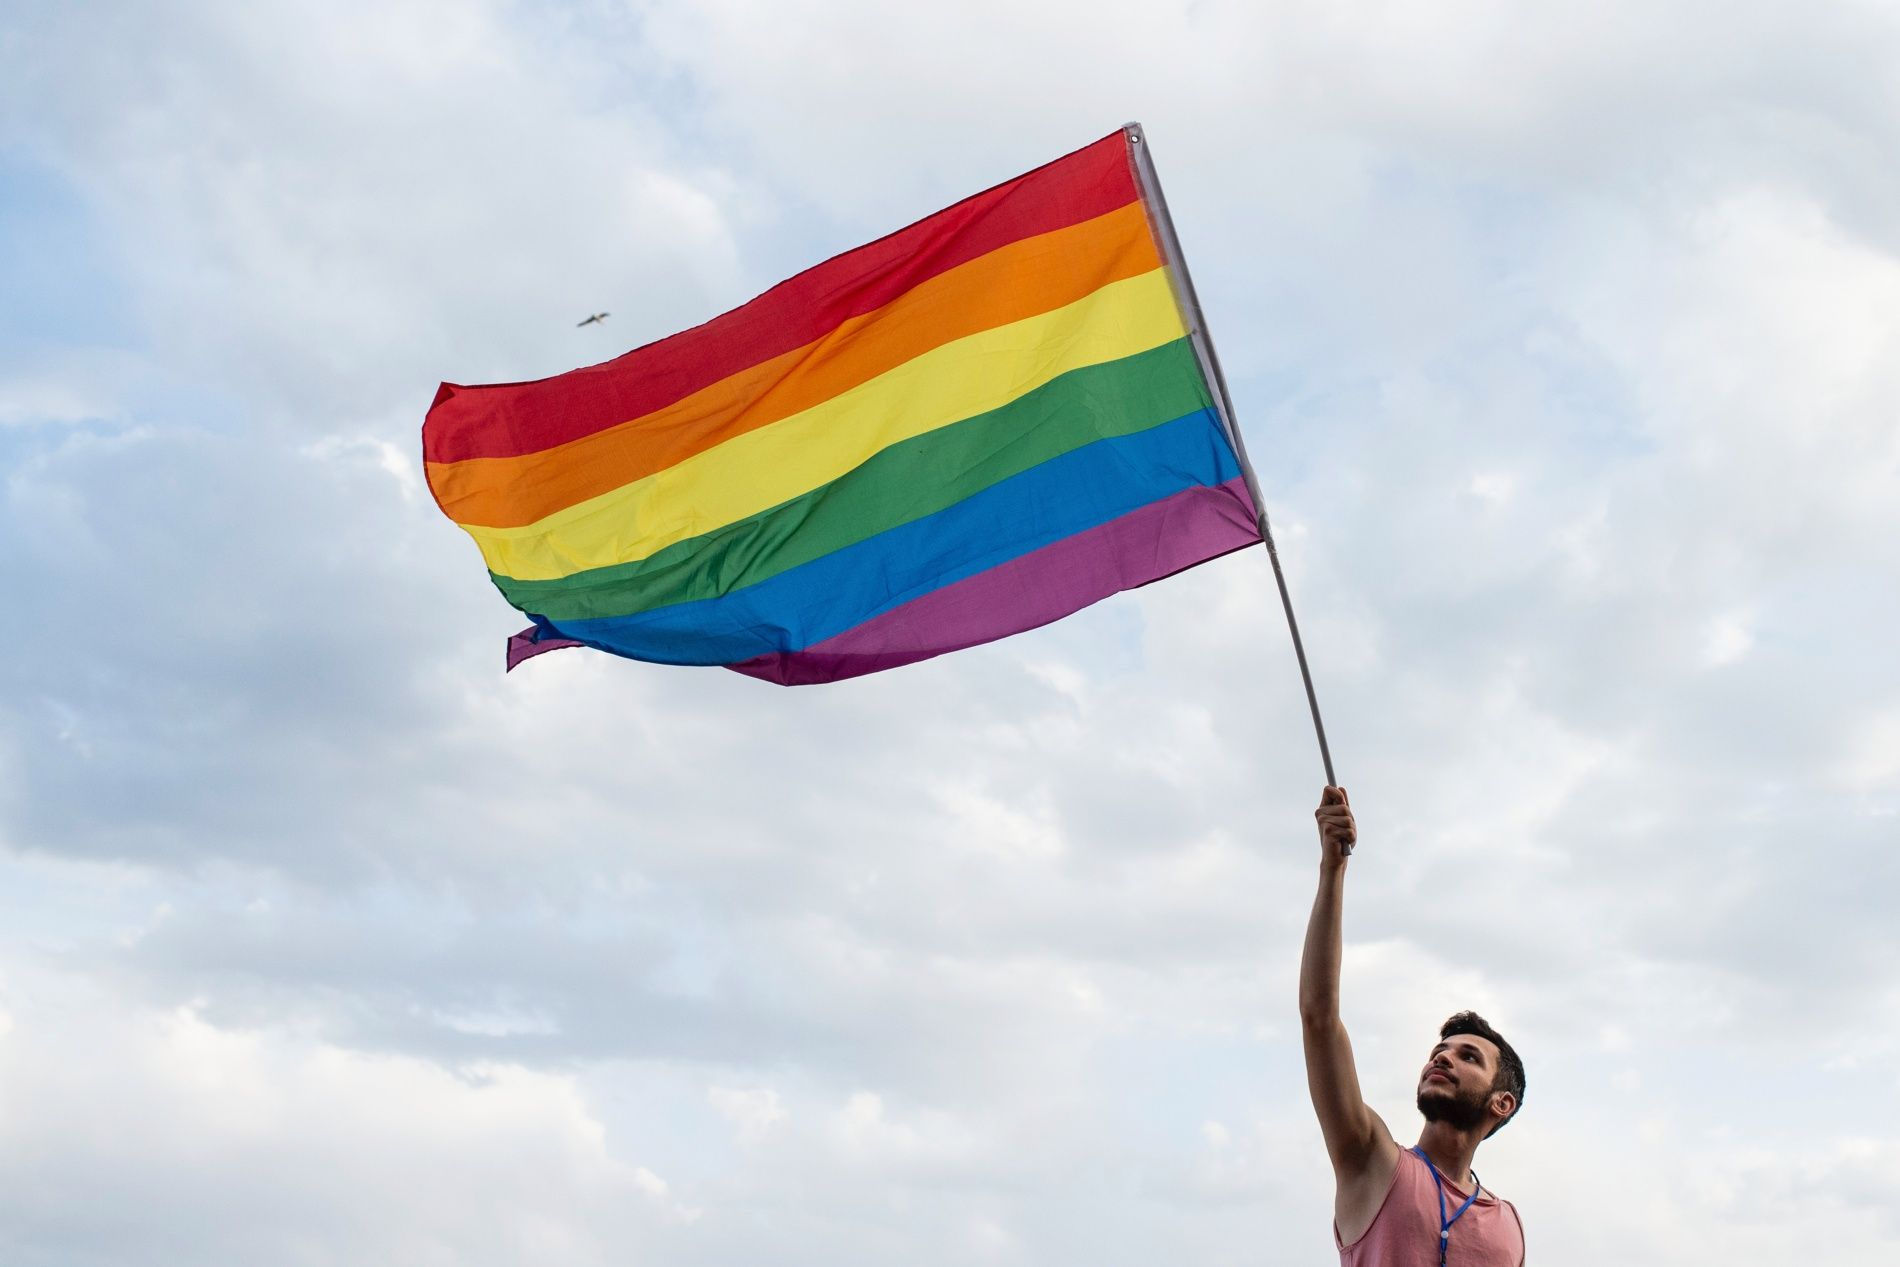 NAPLES, ITALY - JUNE 22: An activist of the LGBT movement with a flag during the 12th Mediterranean Pride of Naples on June 22, 2019 in Naples, Italy. The Mediterranean Pride of Naples is one of the many events of Pride Month scheduled in Italy and around the world, inspired by the Stonewall riots of 1969, when protests and clashes between police and homosexual groups took place in New York, symbolically the moment of birth of the modern gay liberation movement throughout the world. (Photo by Ivan Romano/Ge